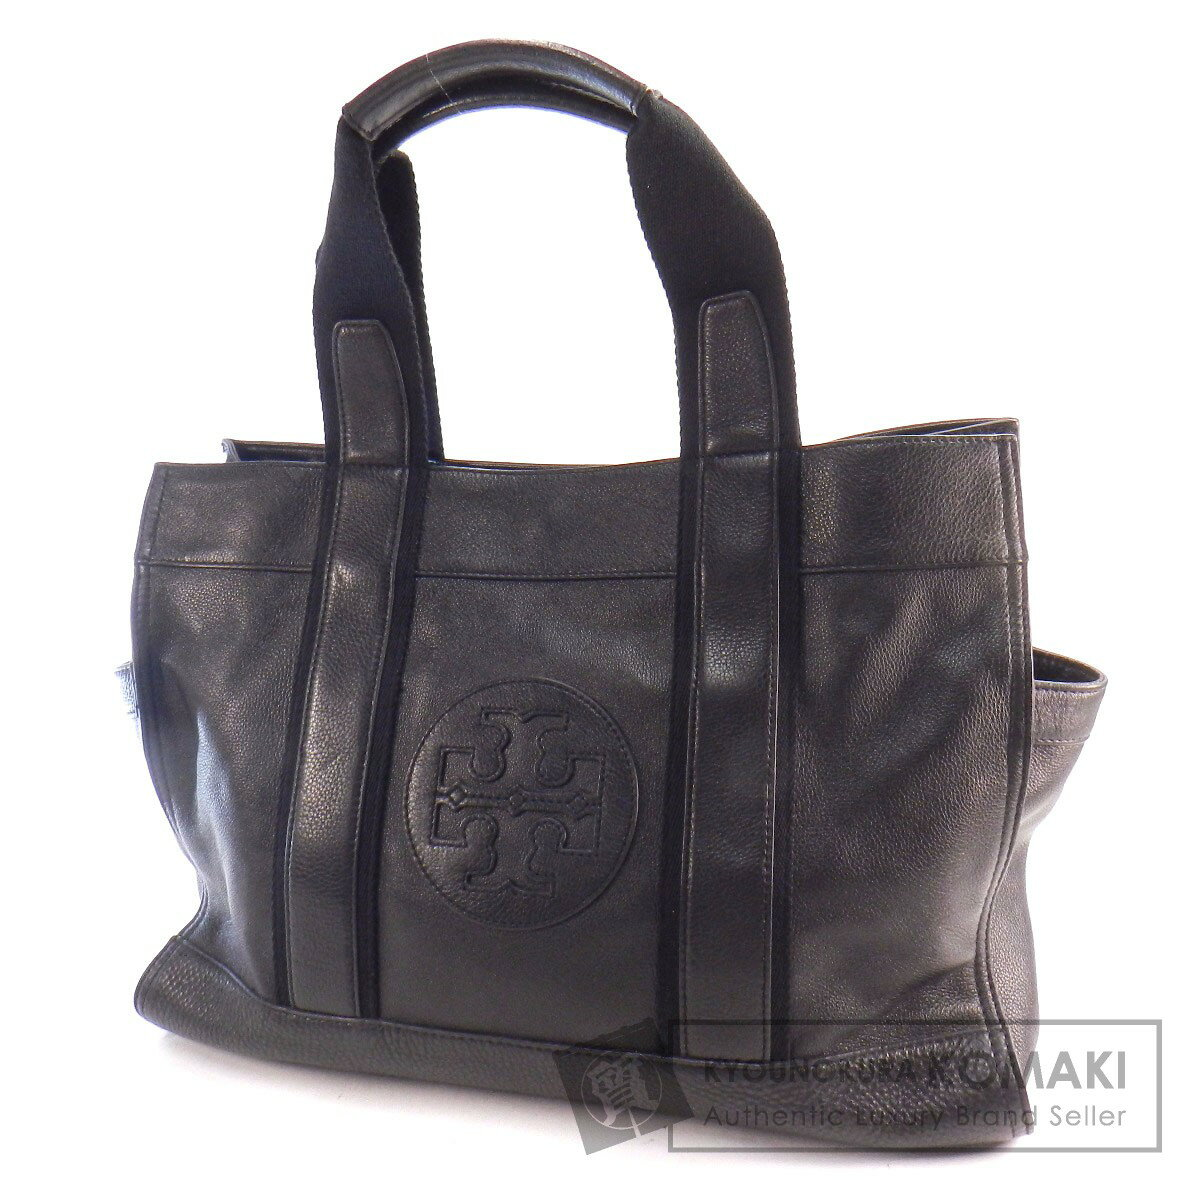 ... Global Market: Authentic Tory Burch Logo design Tote bag Leather